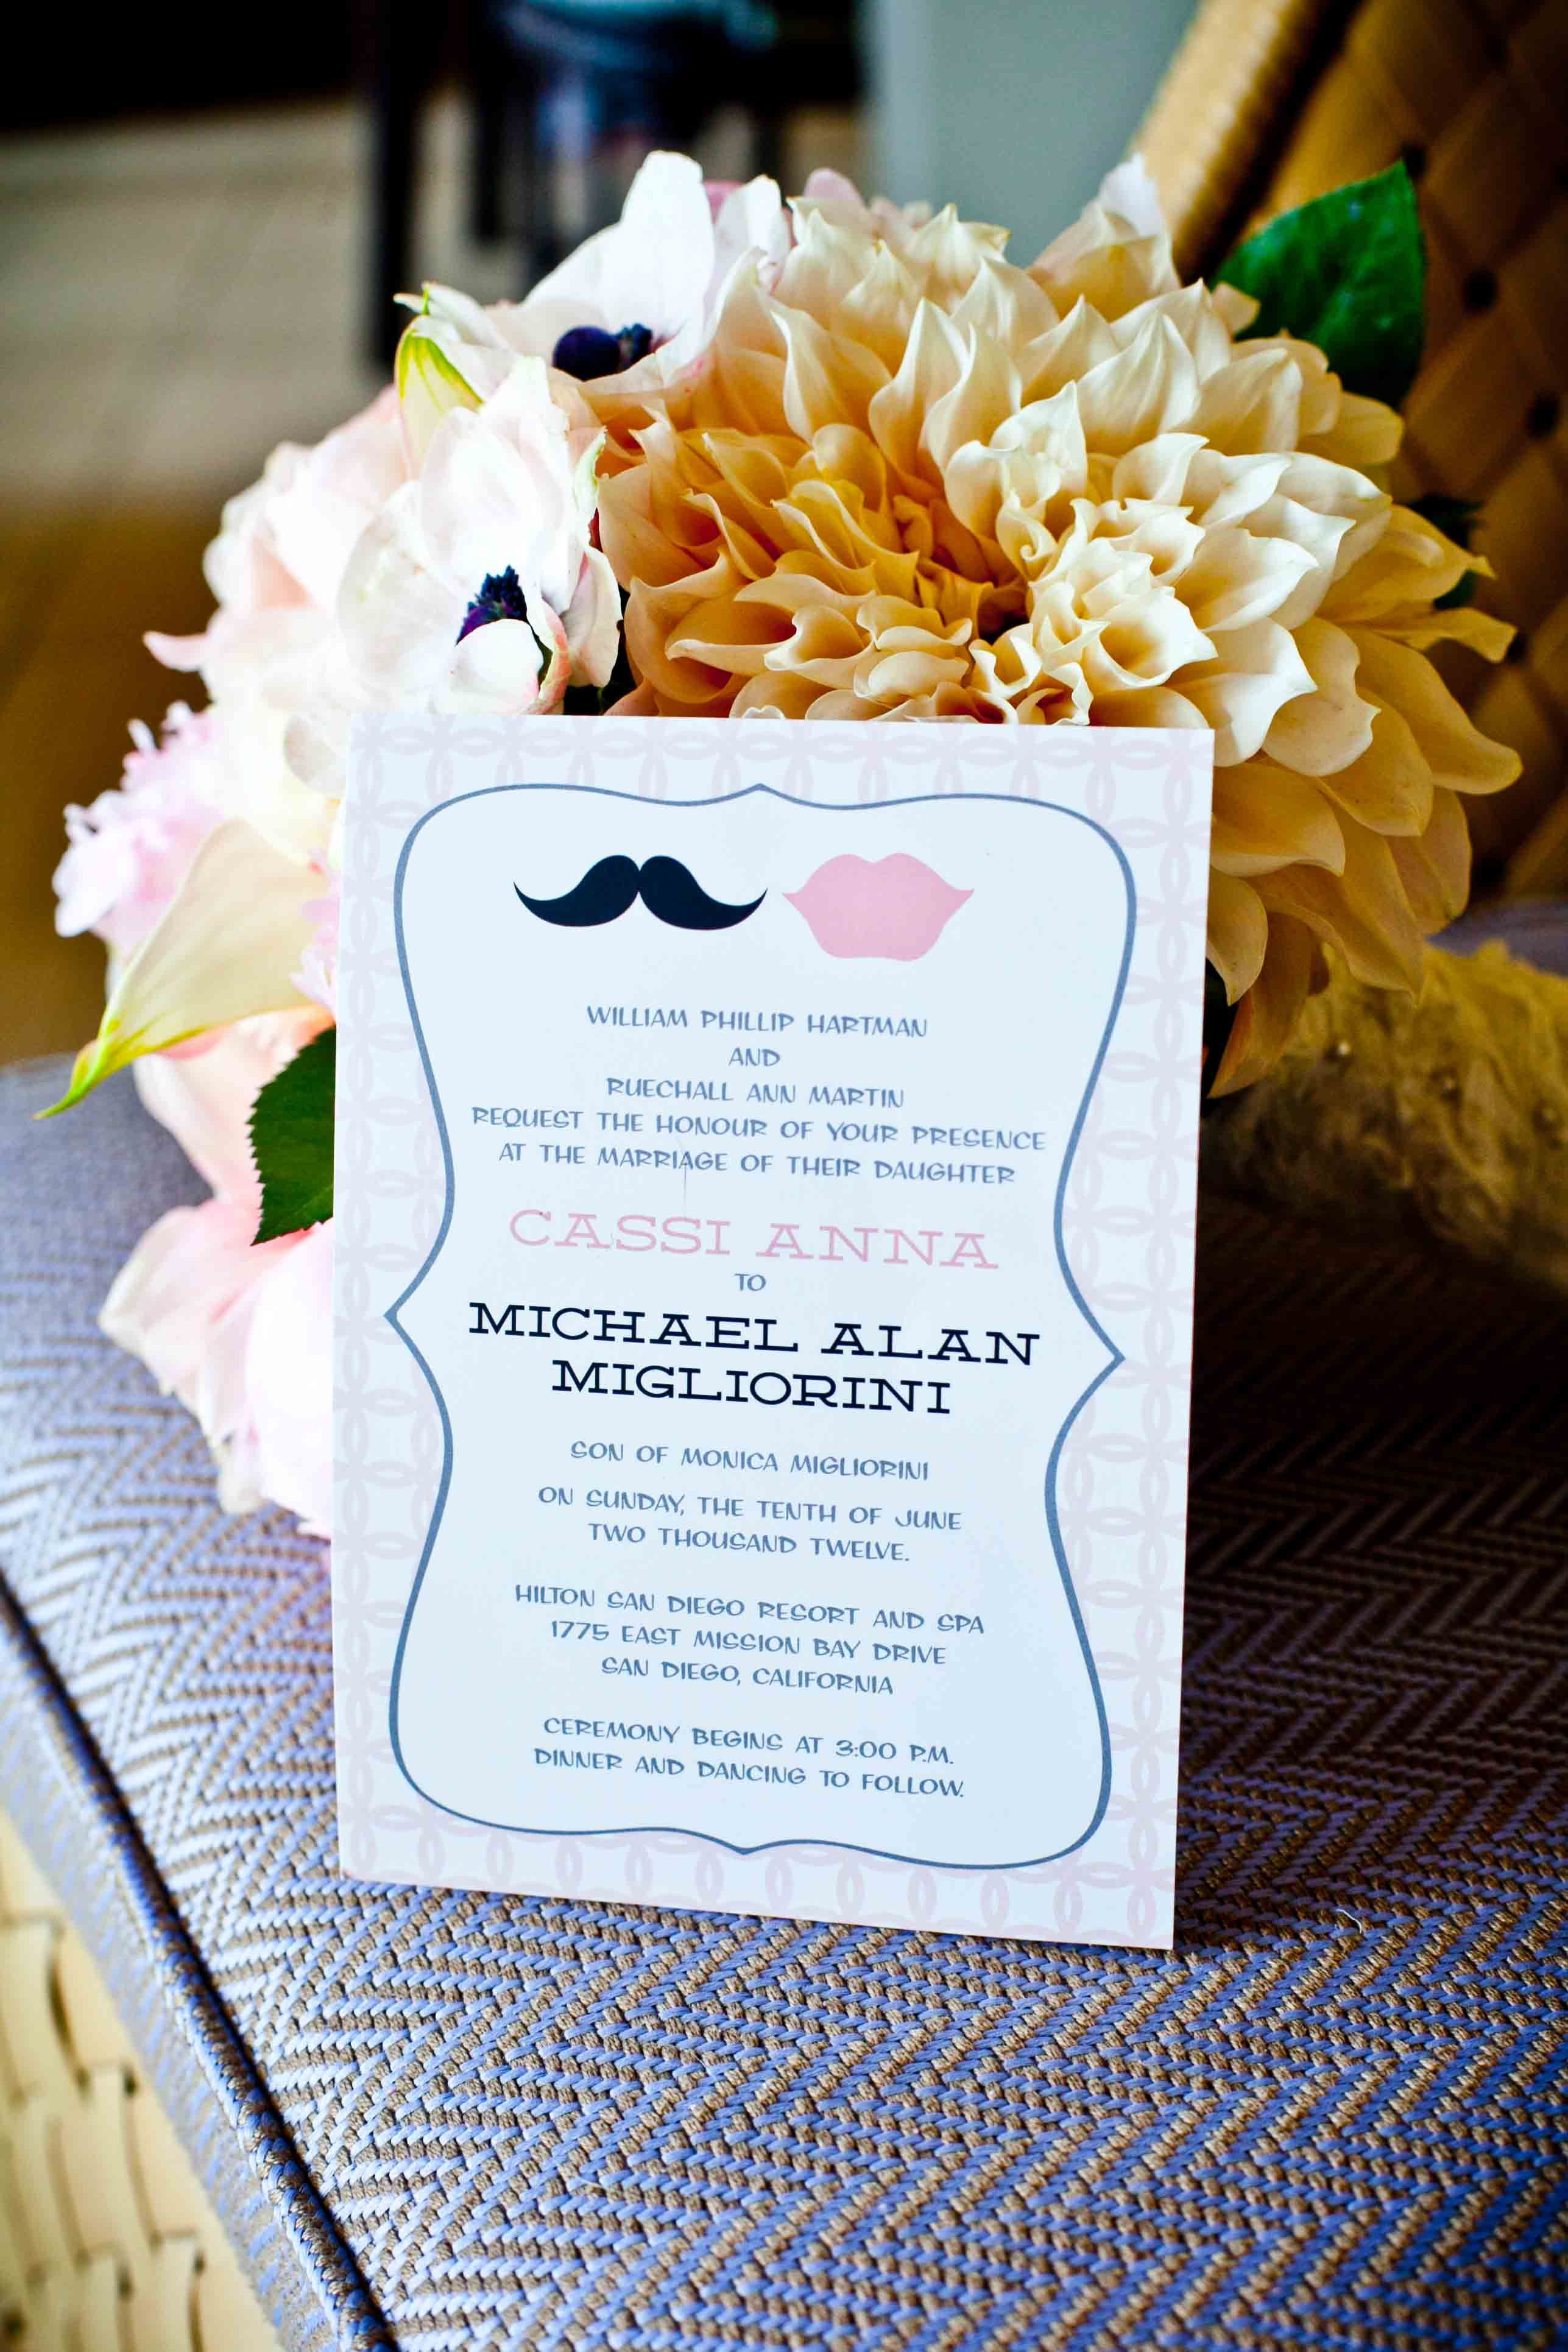 Such cute invitations